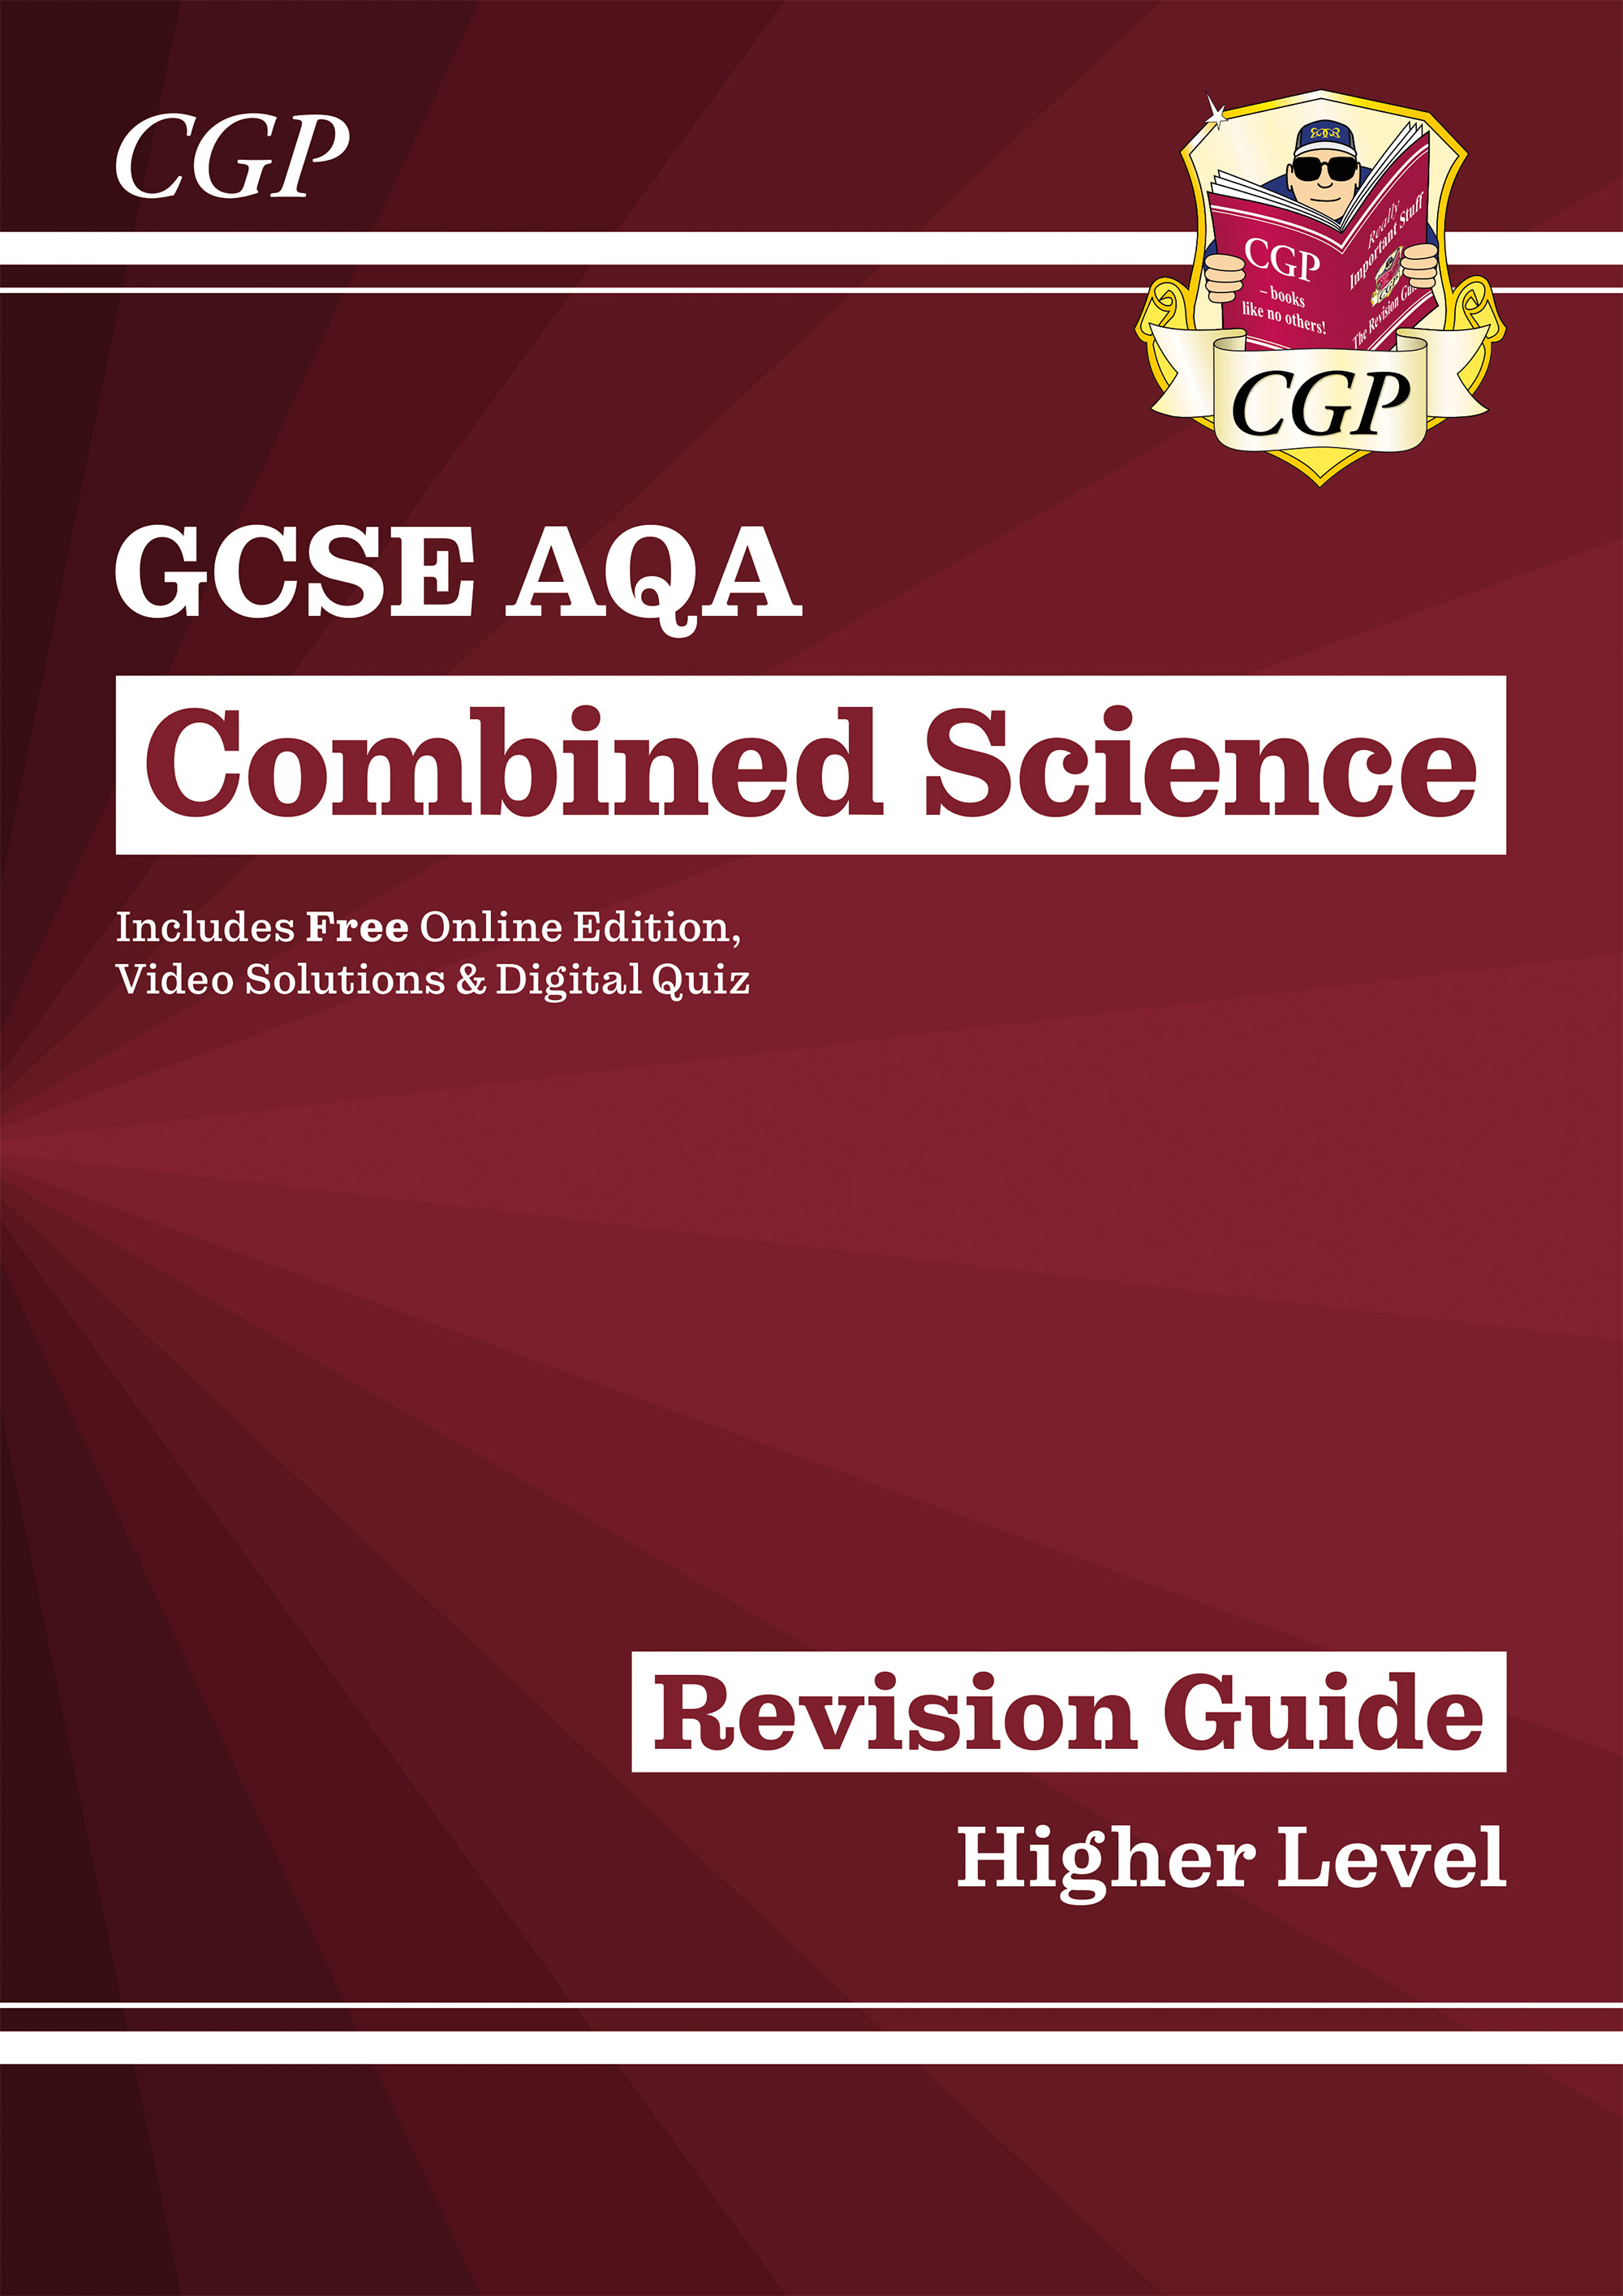 SAHR46D - New GCSE Combined Science AQA Revision Guide - Higher Online Edition, Videos & Quizzes